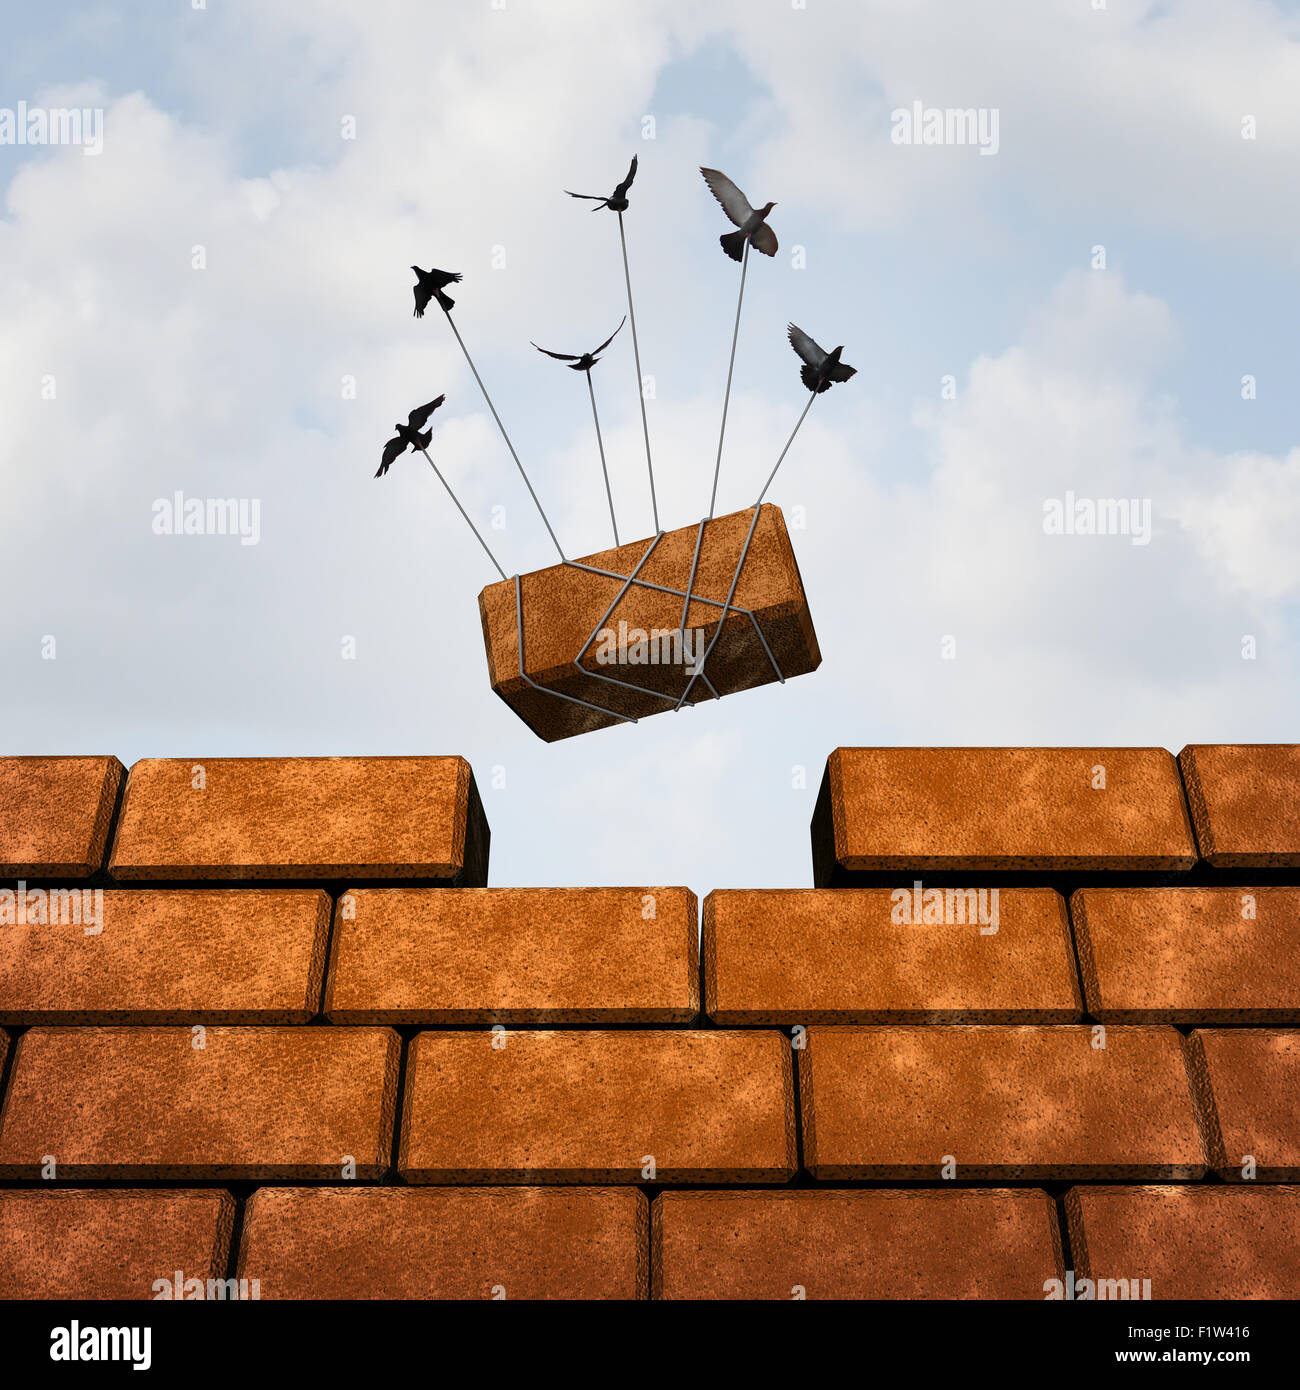 Build a wall business concept as a group of birds placing a brick to complete a wall as a puzzle metaphor and working - Stock Image